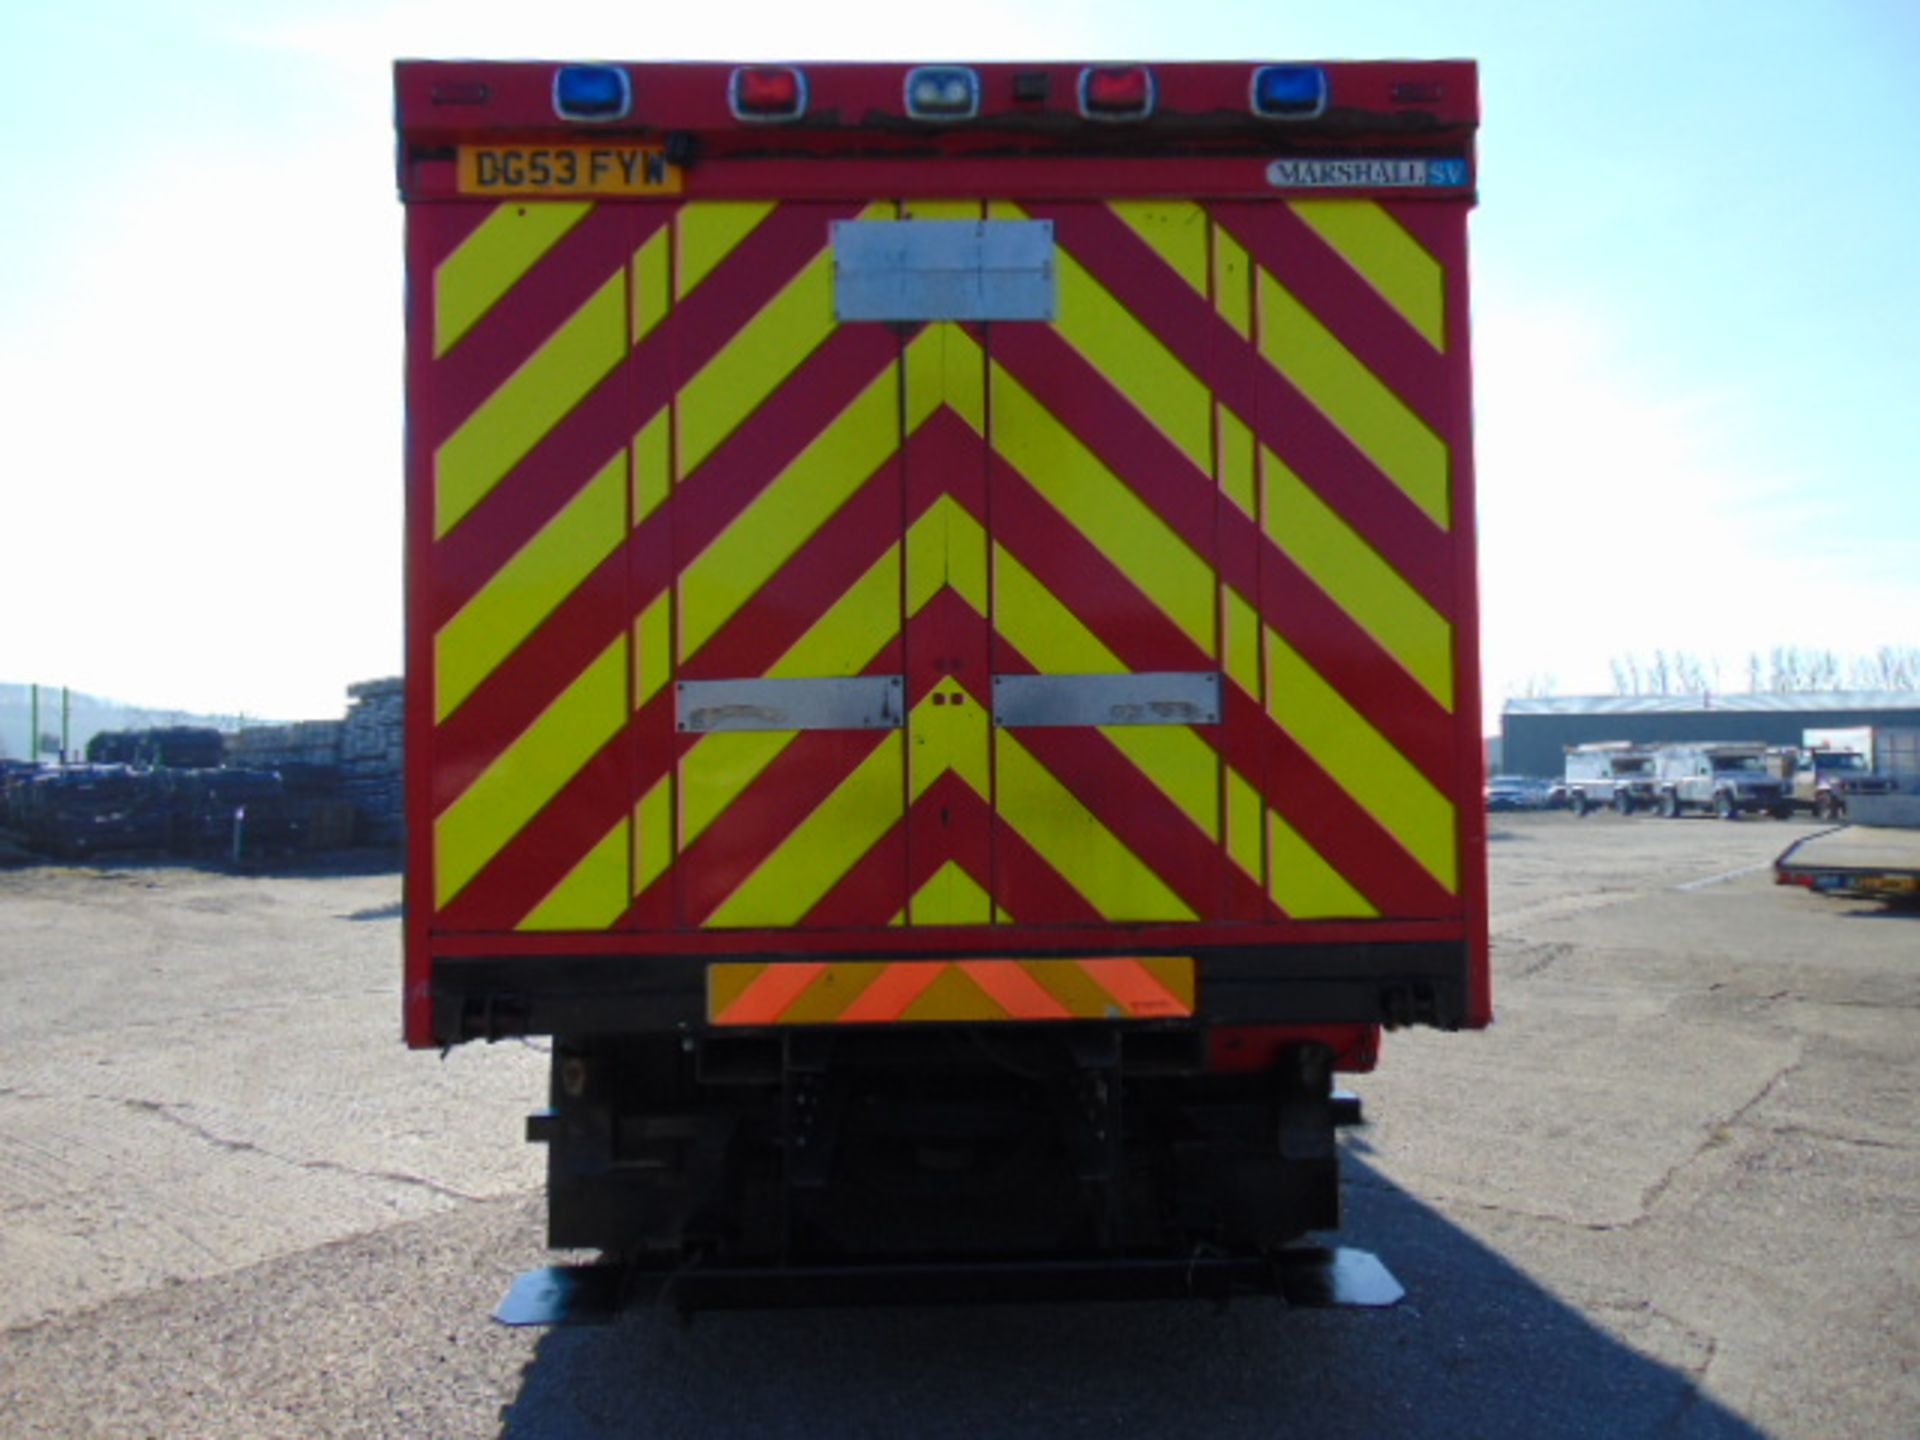 Lot 36 - 2004 MAN TG-A 6X2 Rear Steer Incident Support Unit ONLY 19,854 KM!!